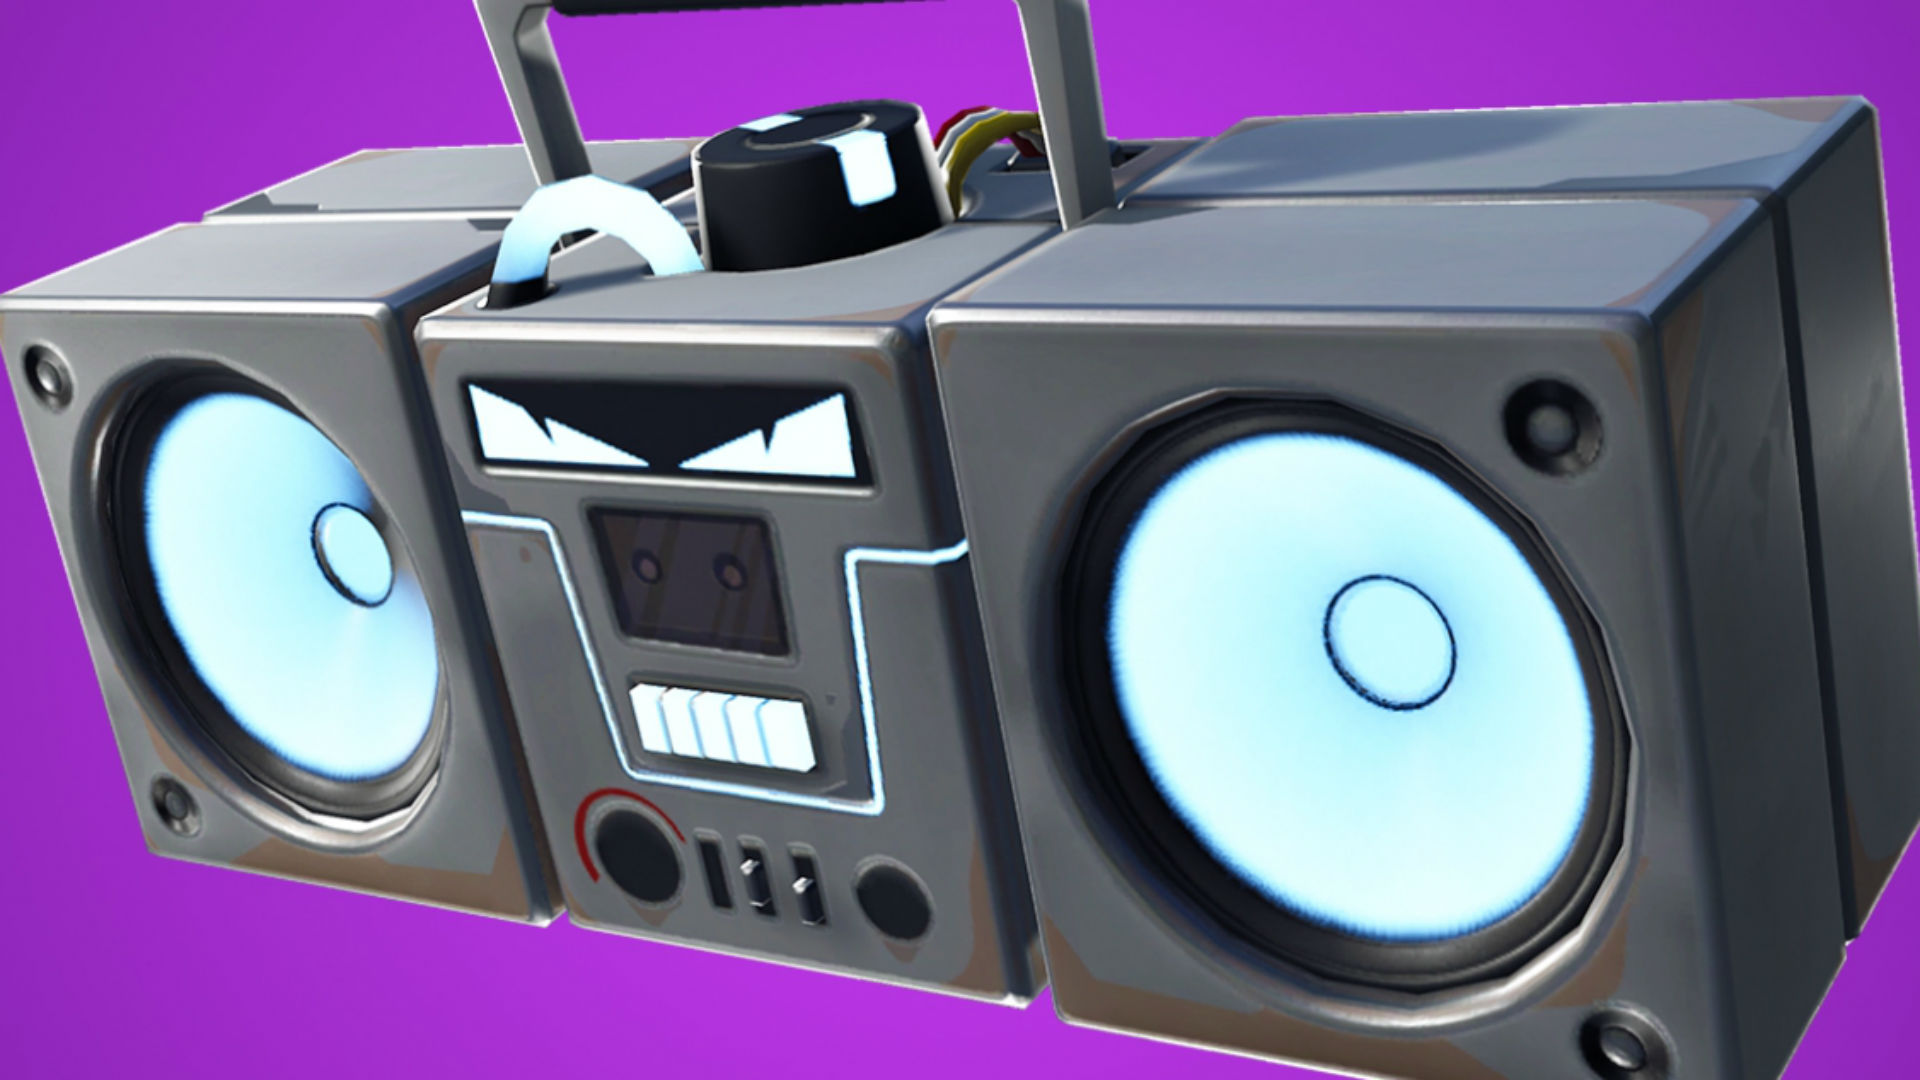 Fortnite's New Boombox Item Makes Building Impossible